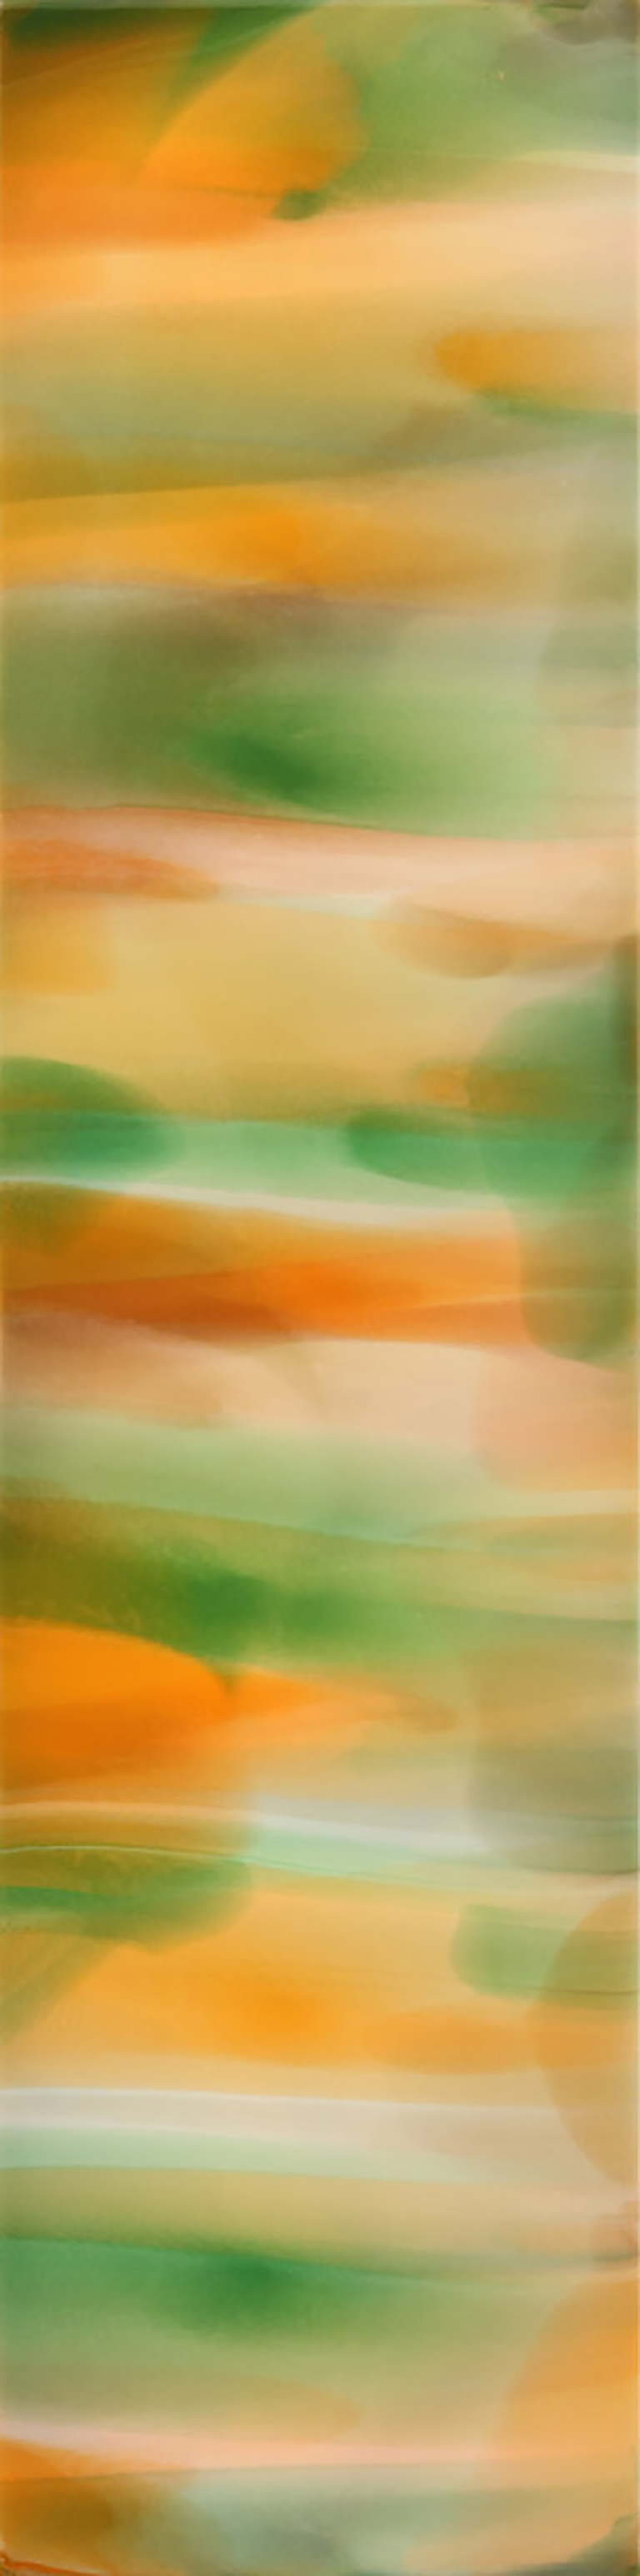 Delight , Acrylic on Mahogany/Aluminum Panel,24 x 6 in.  Contact Gallery for Price